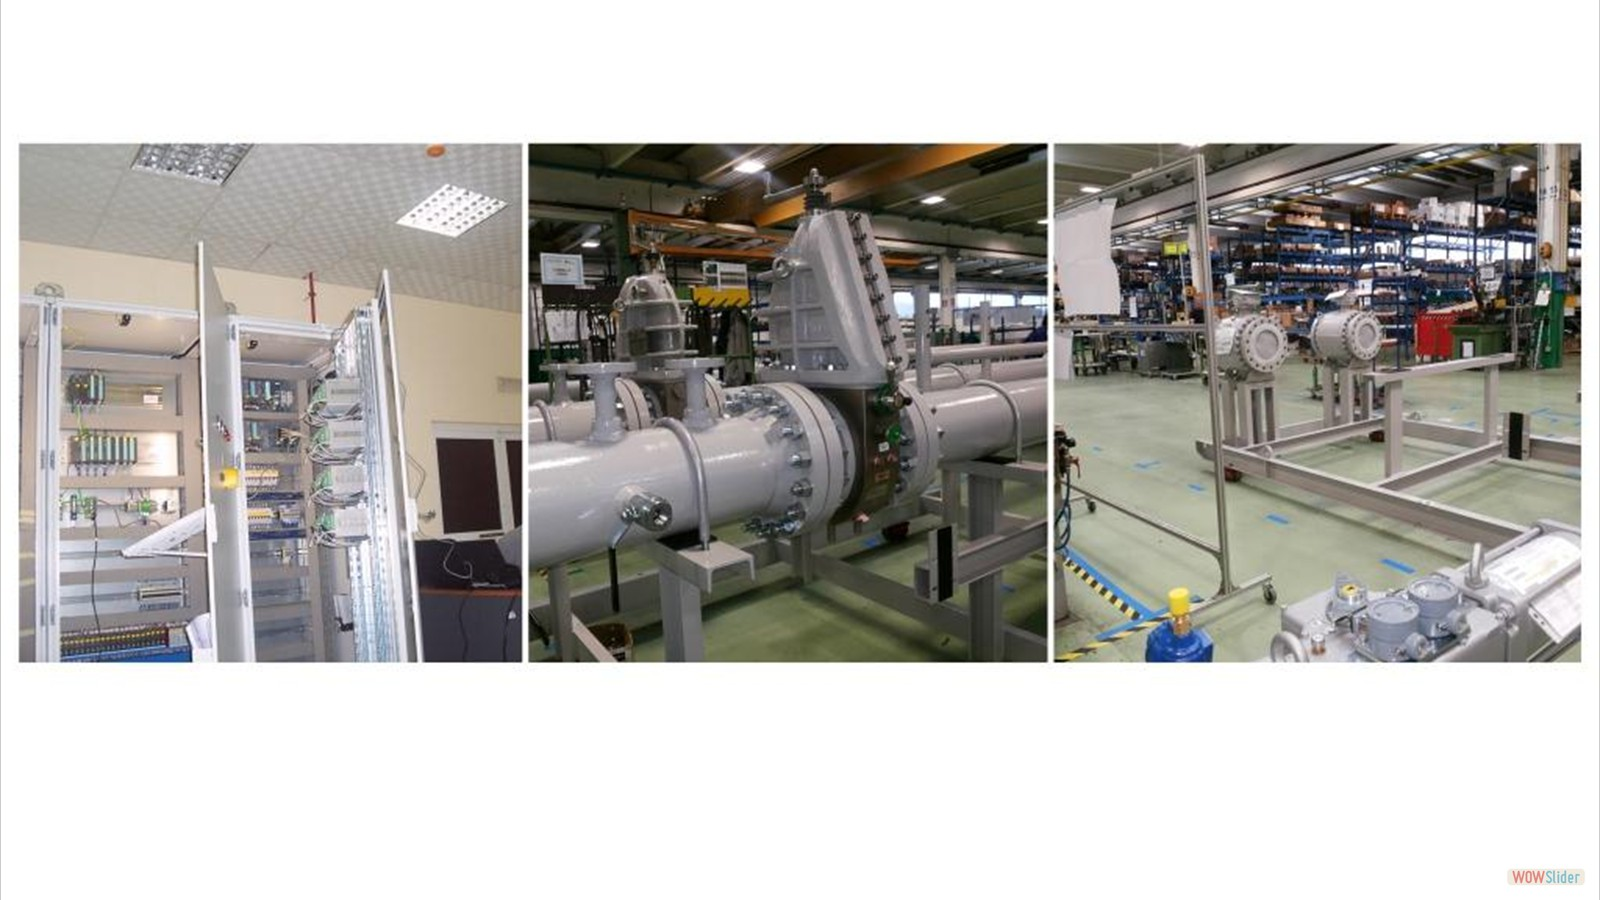 Plc Integration Works, Process Equipment Manufacturing Assemblage